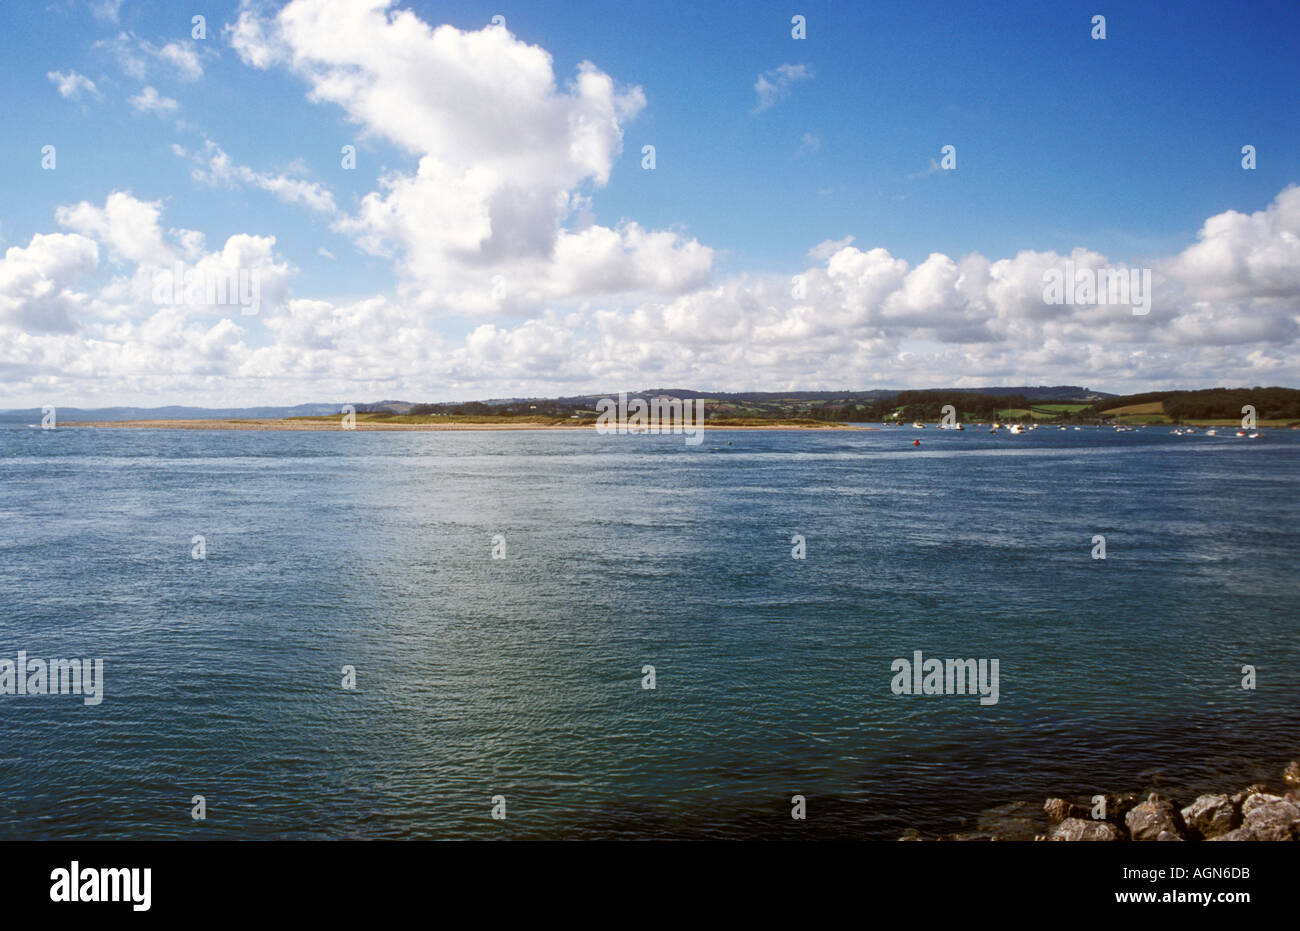 The River Exe Estuary at Exmouth in Devon, England - Stock Image